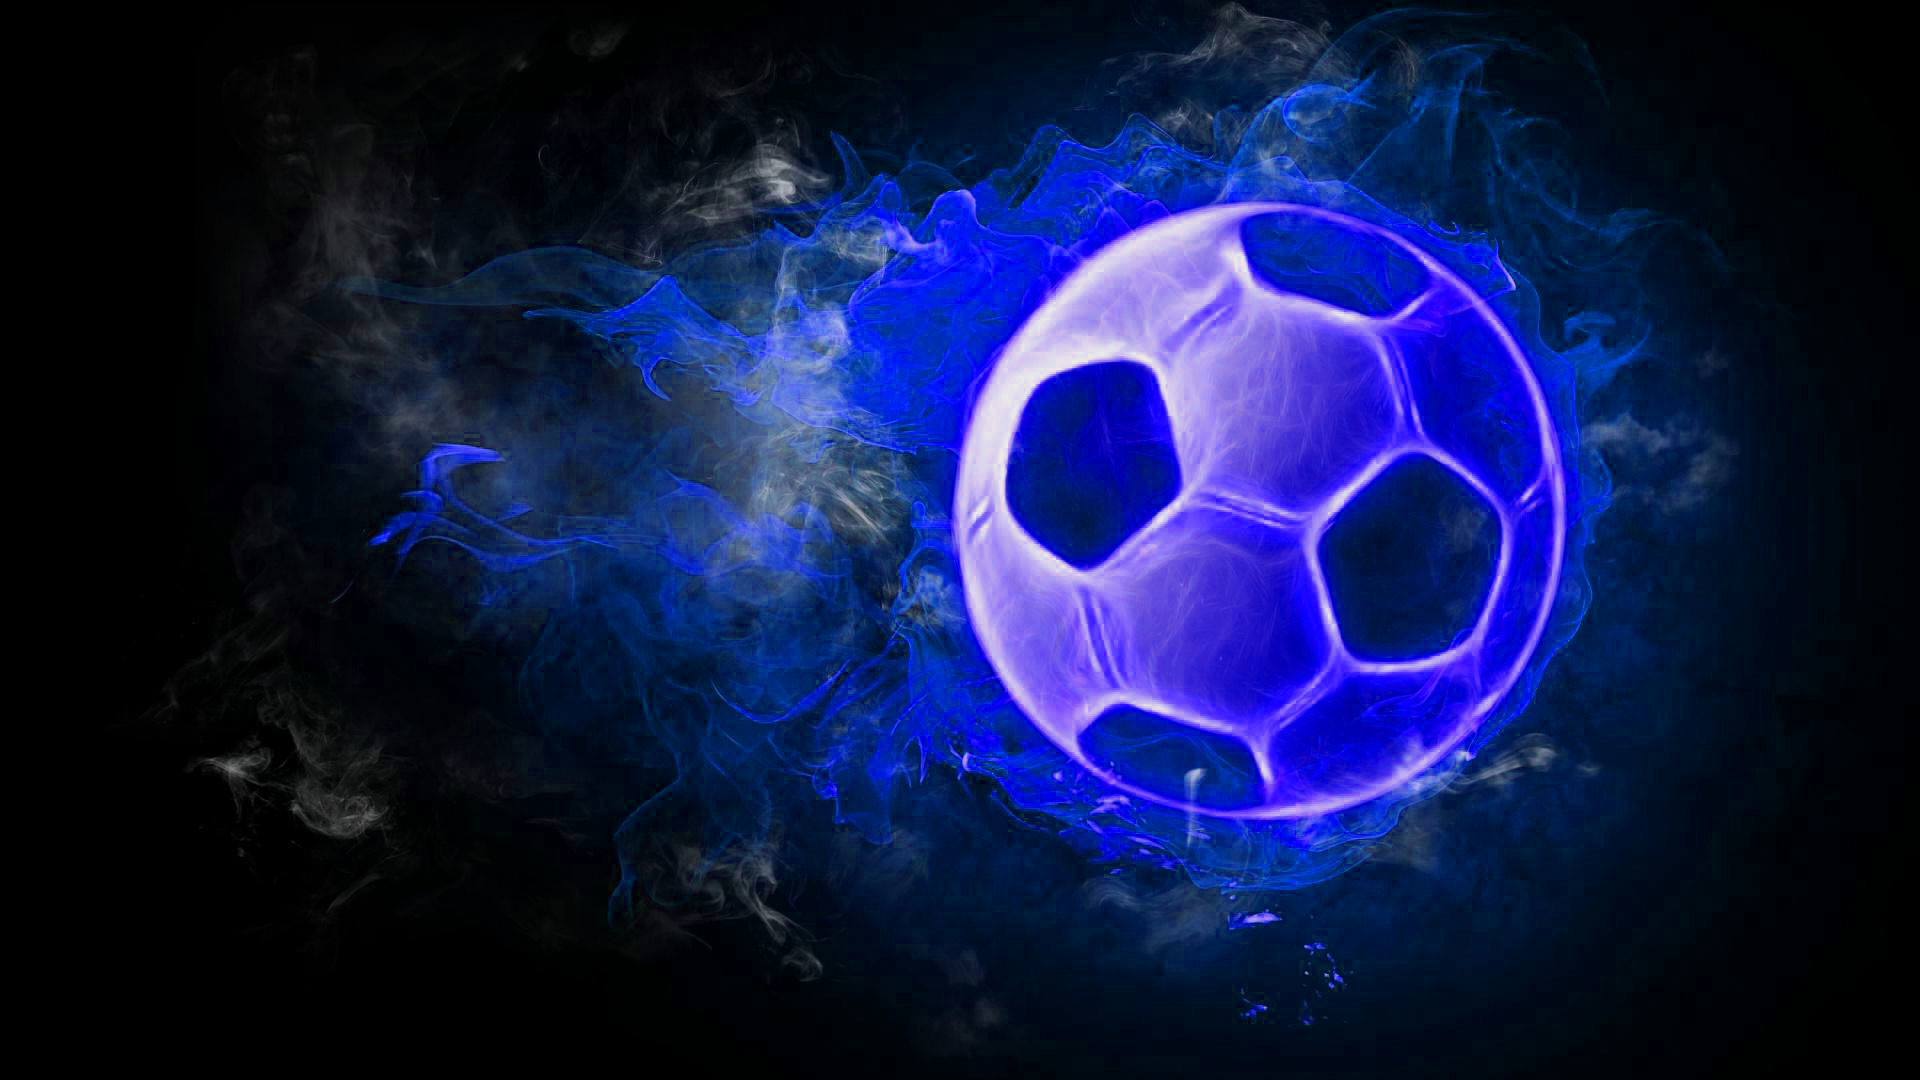 1920x1080 Wallpaper: Football HD Wallpapers 1080p (83+ Images